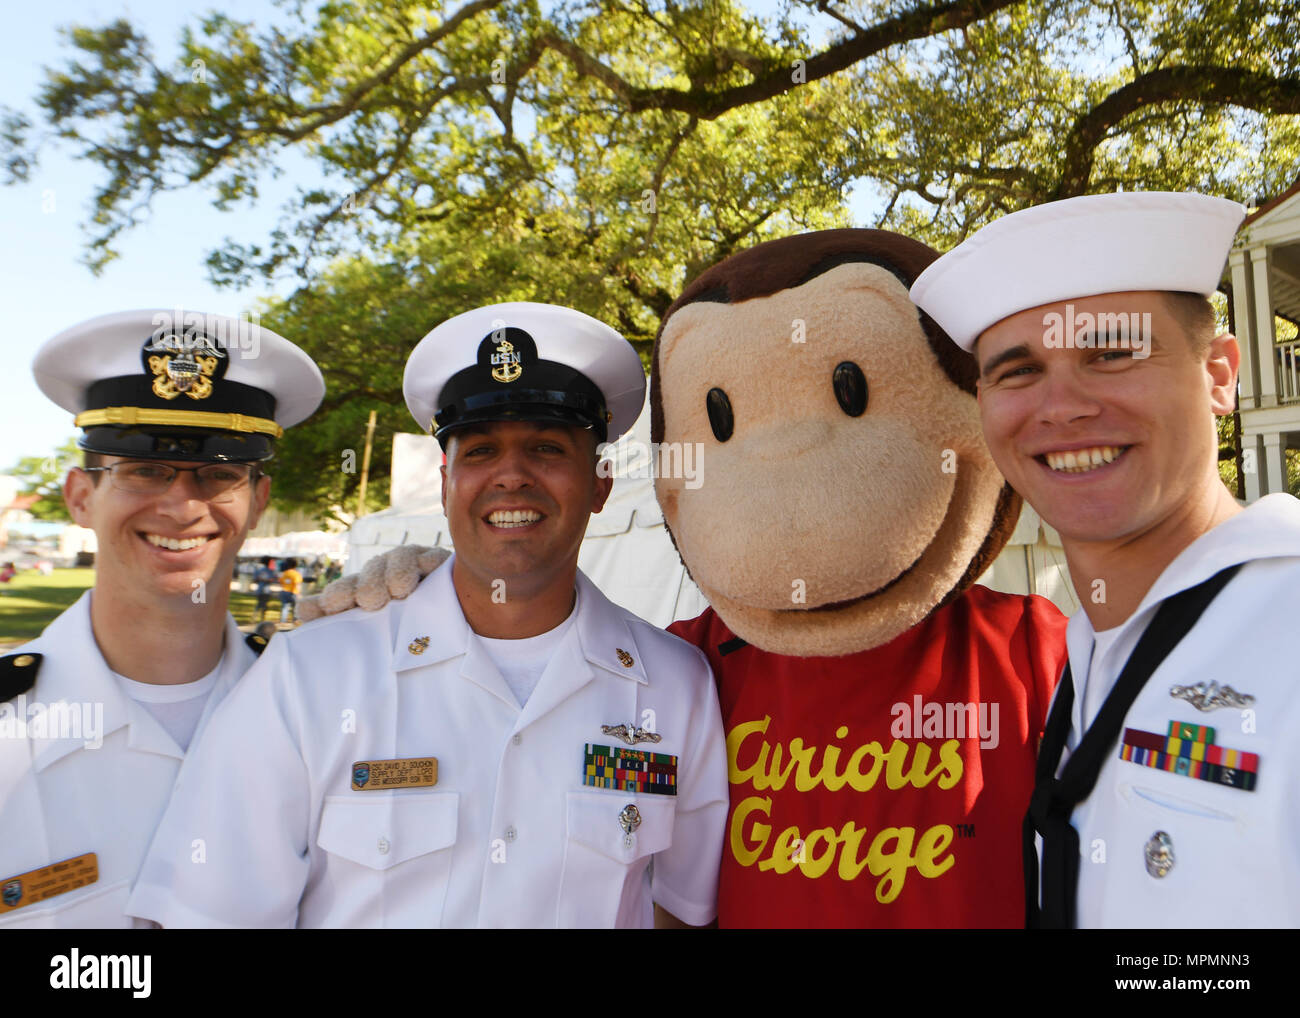 170401-N-LQ926-008 BILOXI, Miss. (April 1, 2017) Sailors from the Virginia-class fast-attack submarine USS Mississippi (SSN 782) pose for a photo during the Mississippi Bicentennial/Navy Week celebration at Centennial Plaza Gulfport, Mississippi. Gulfport/Biloxi is one of select regions to host a 2017 Navy Week, a week dedicated to raise U.S. Navy awareness in through local outreach, community service and exhibitions. (U.S. Navy photo by Mass Communication Specialist 2nd Class Alex Van'tLeven/Released) Stock Photo